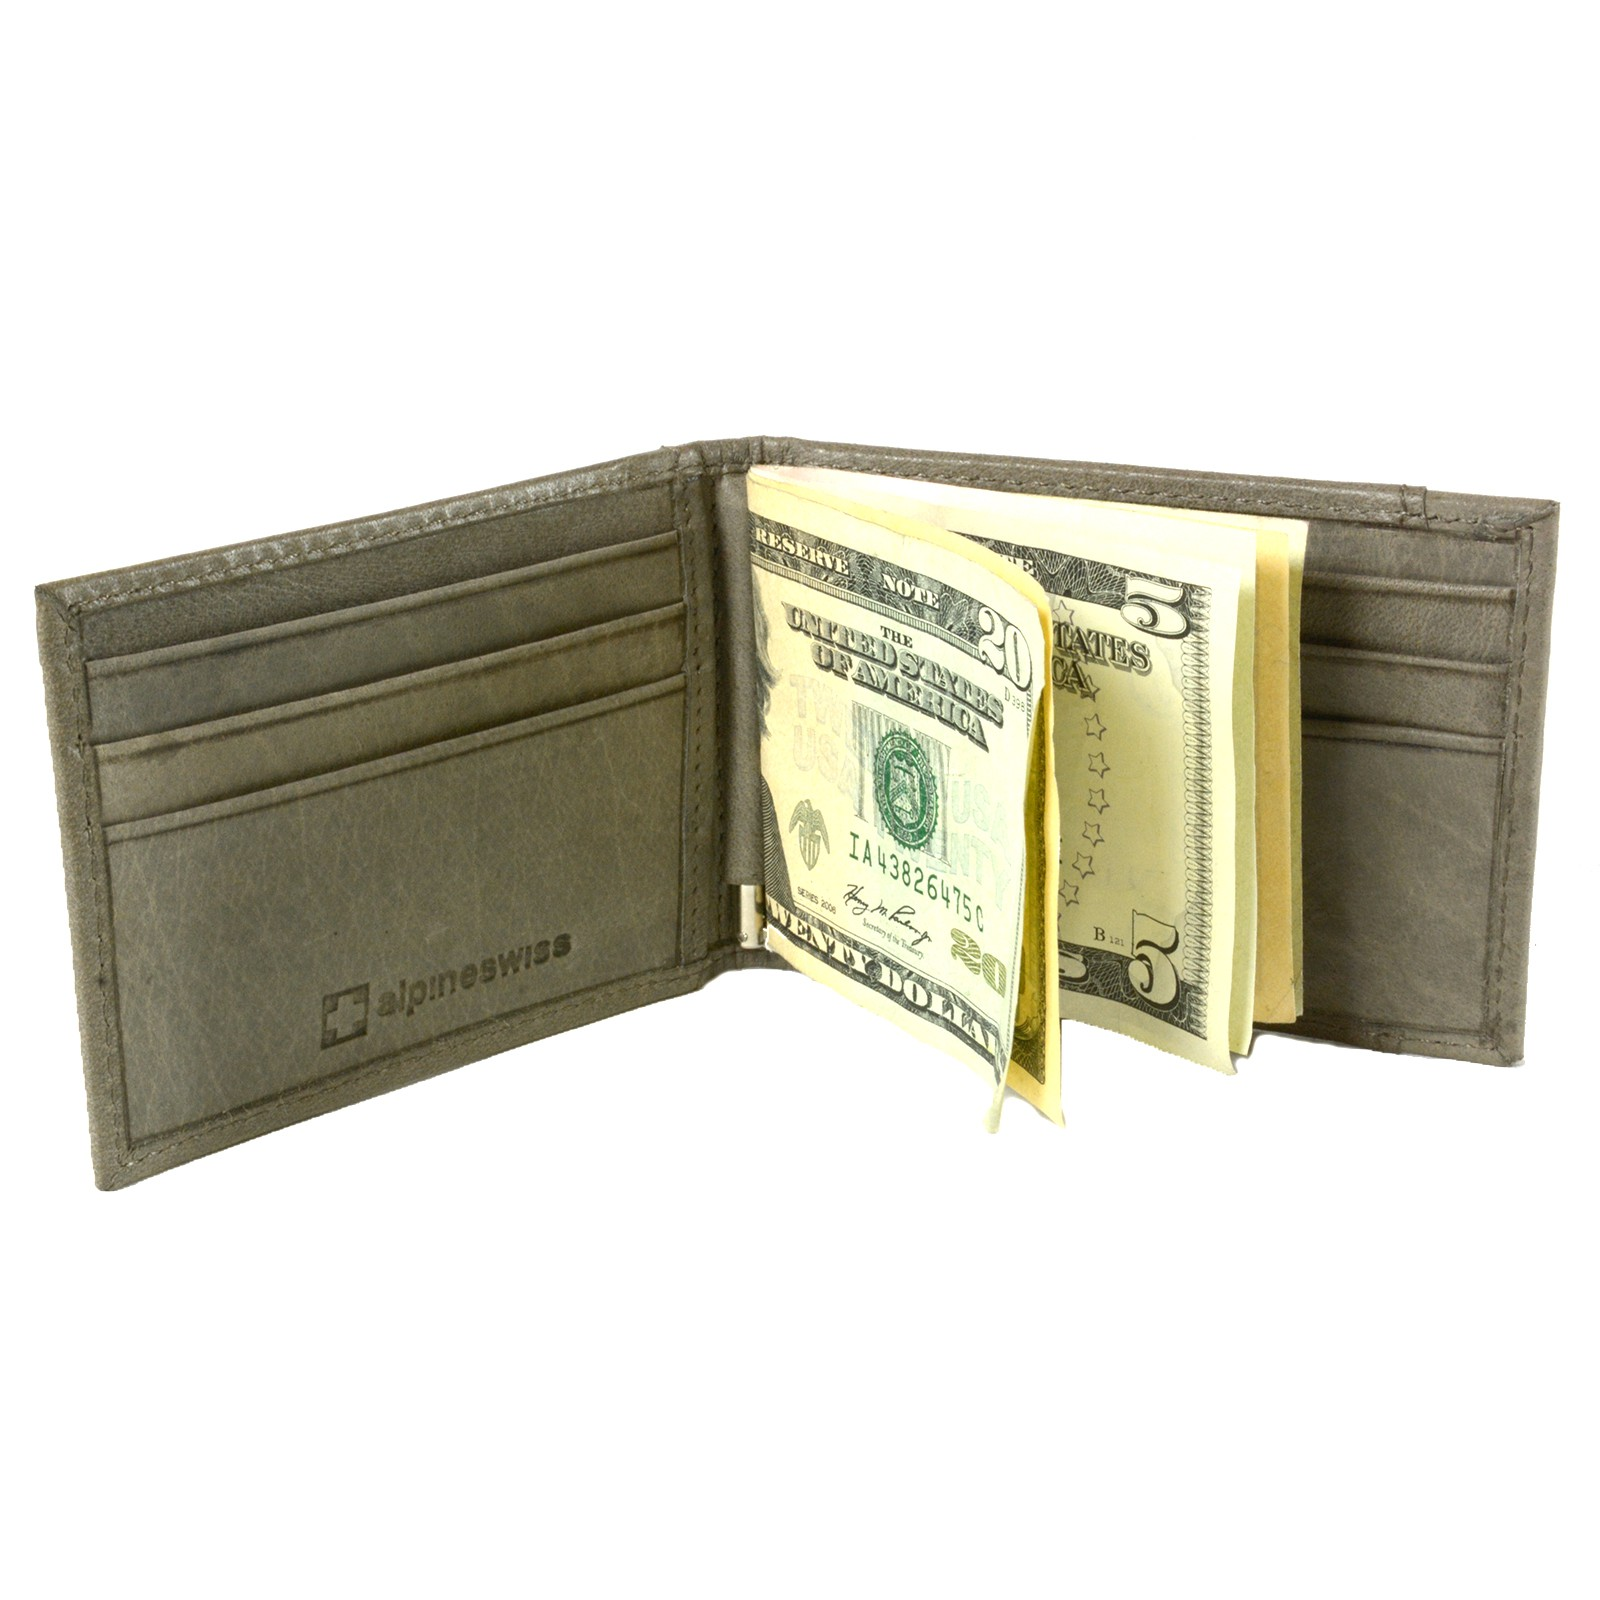 Alpine-Swiss-Mens-Bifold-Money-Clip-Spring-Loaded-Leather-ID-Front-Pocket-Wallet thumbnail 77